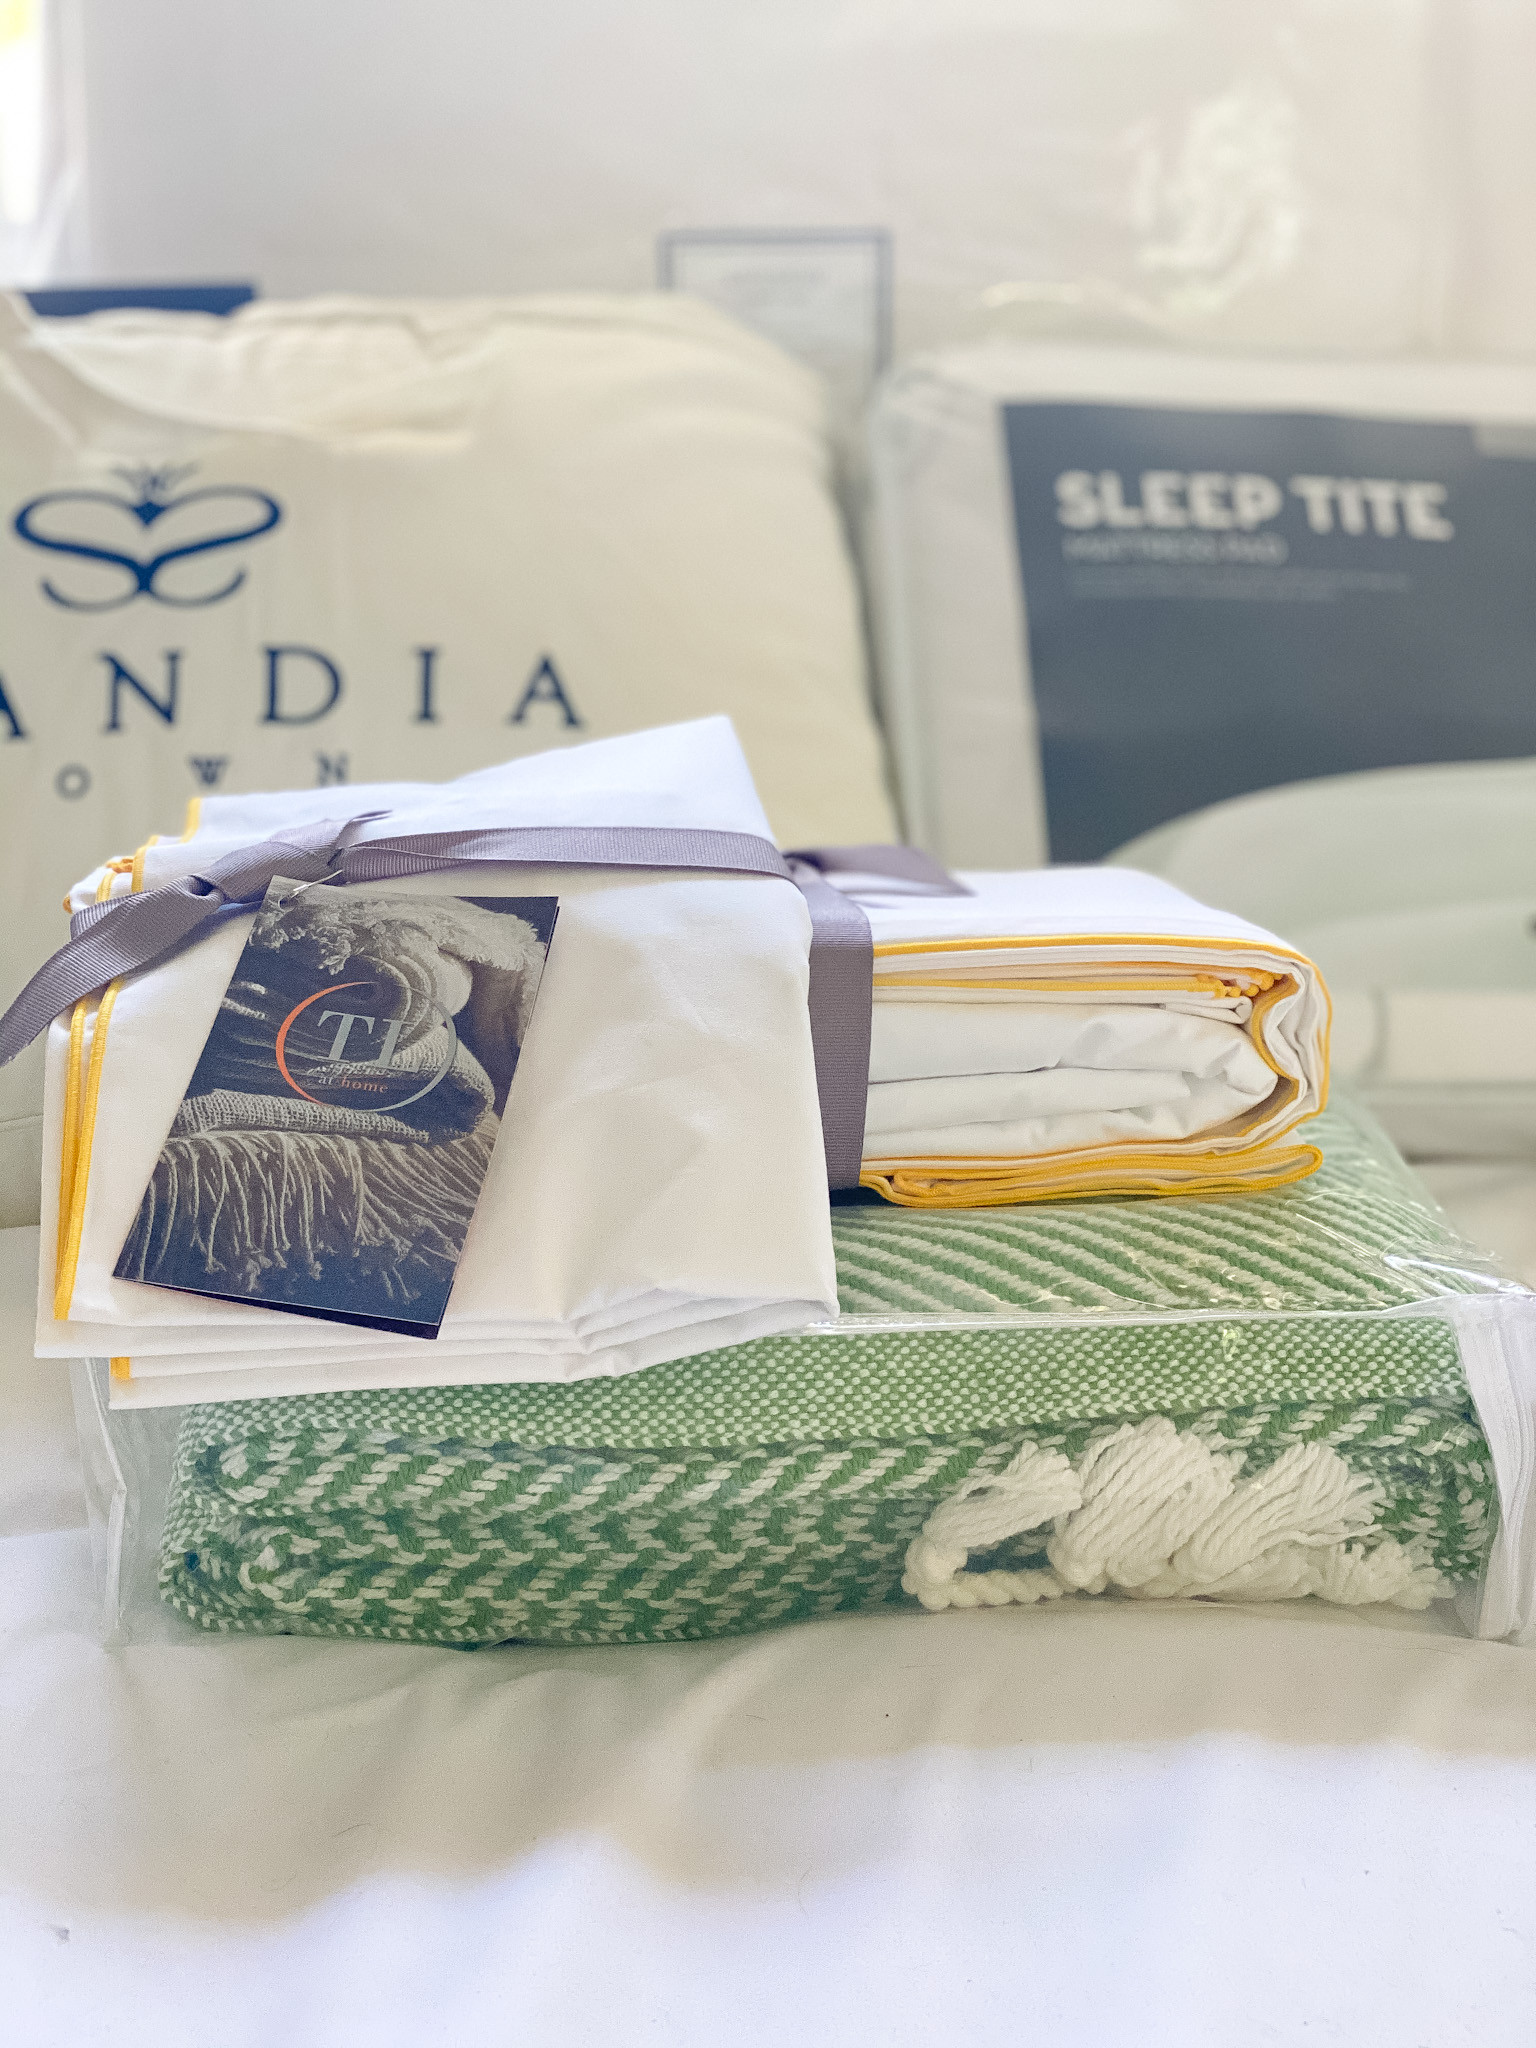 Bedding / Bed Styling Consultation